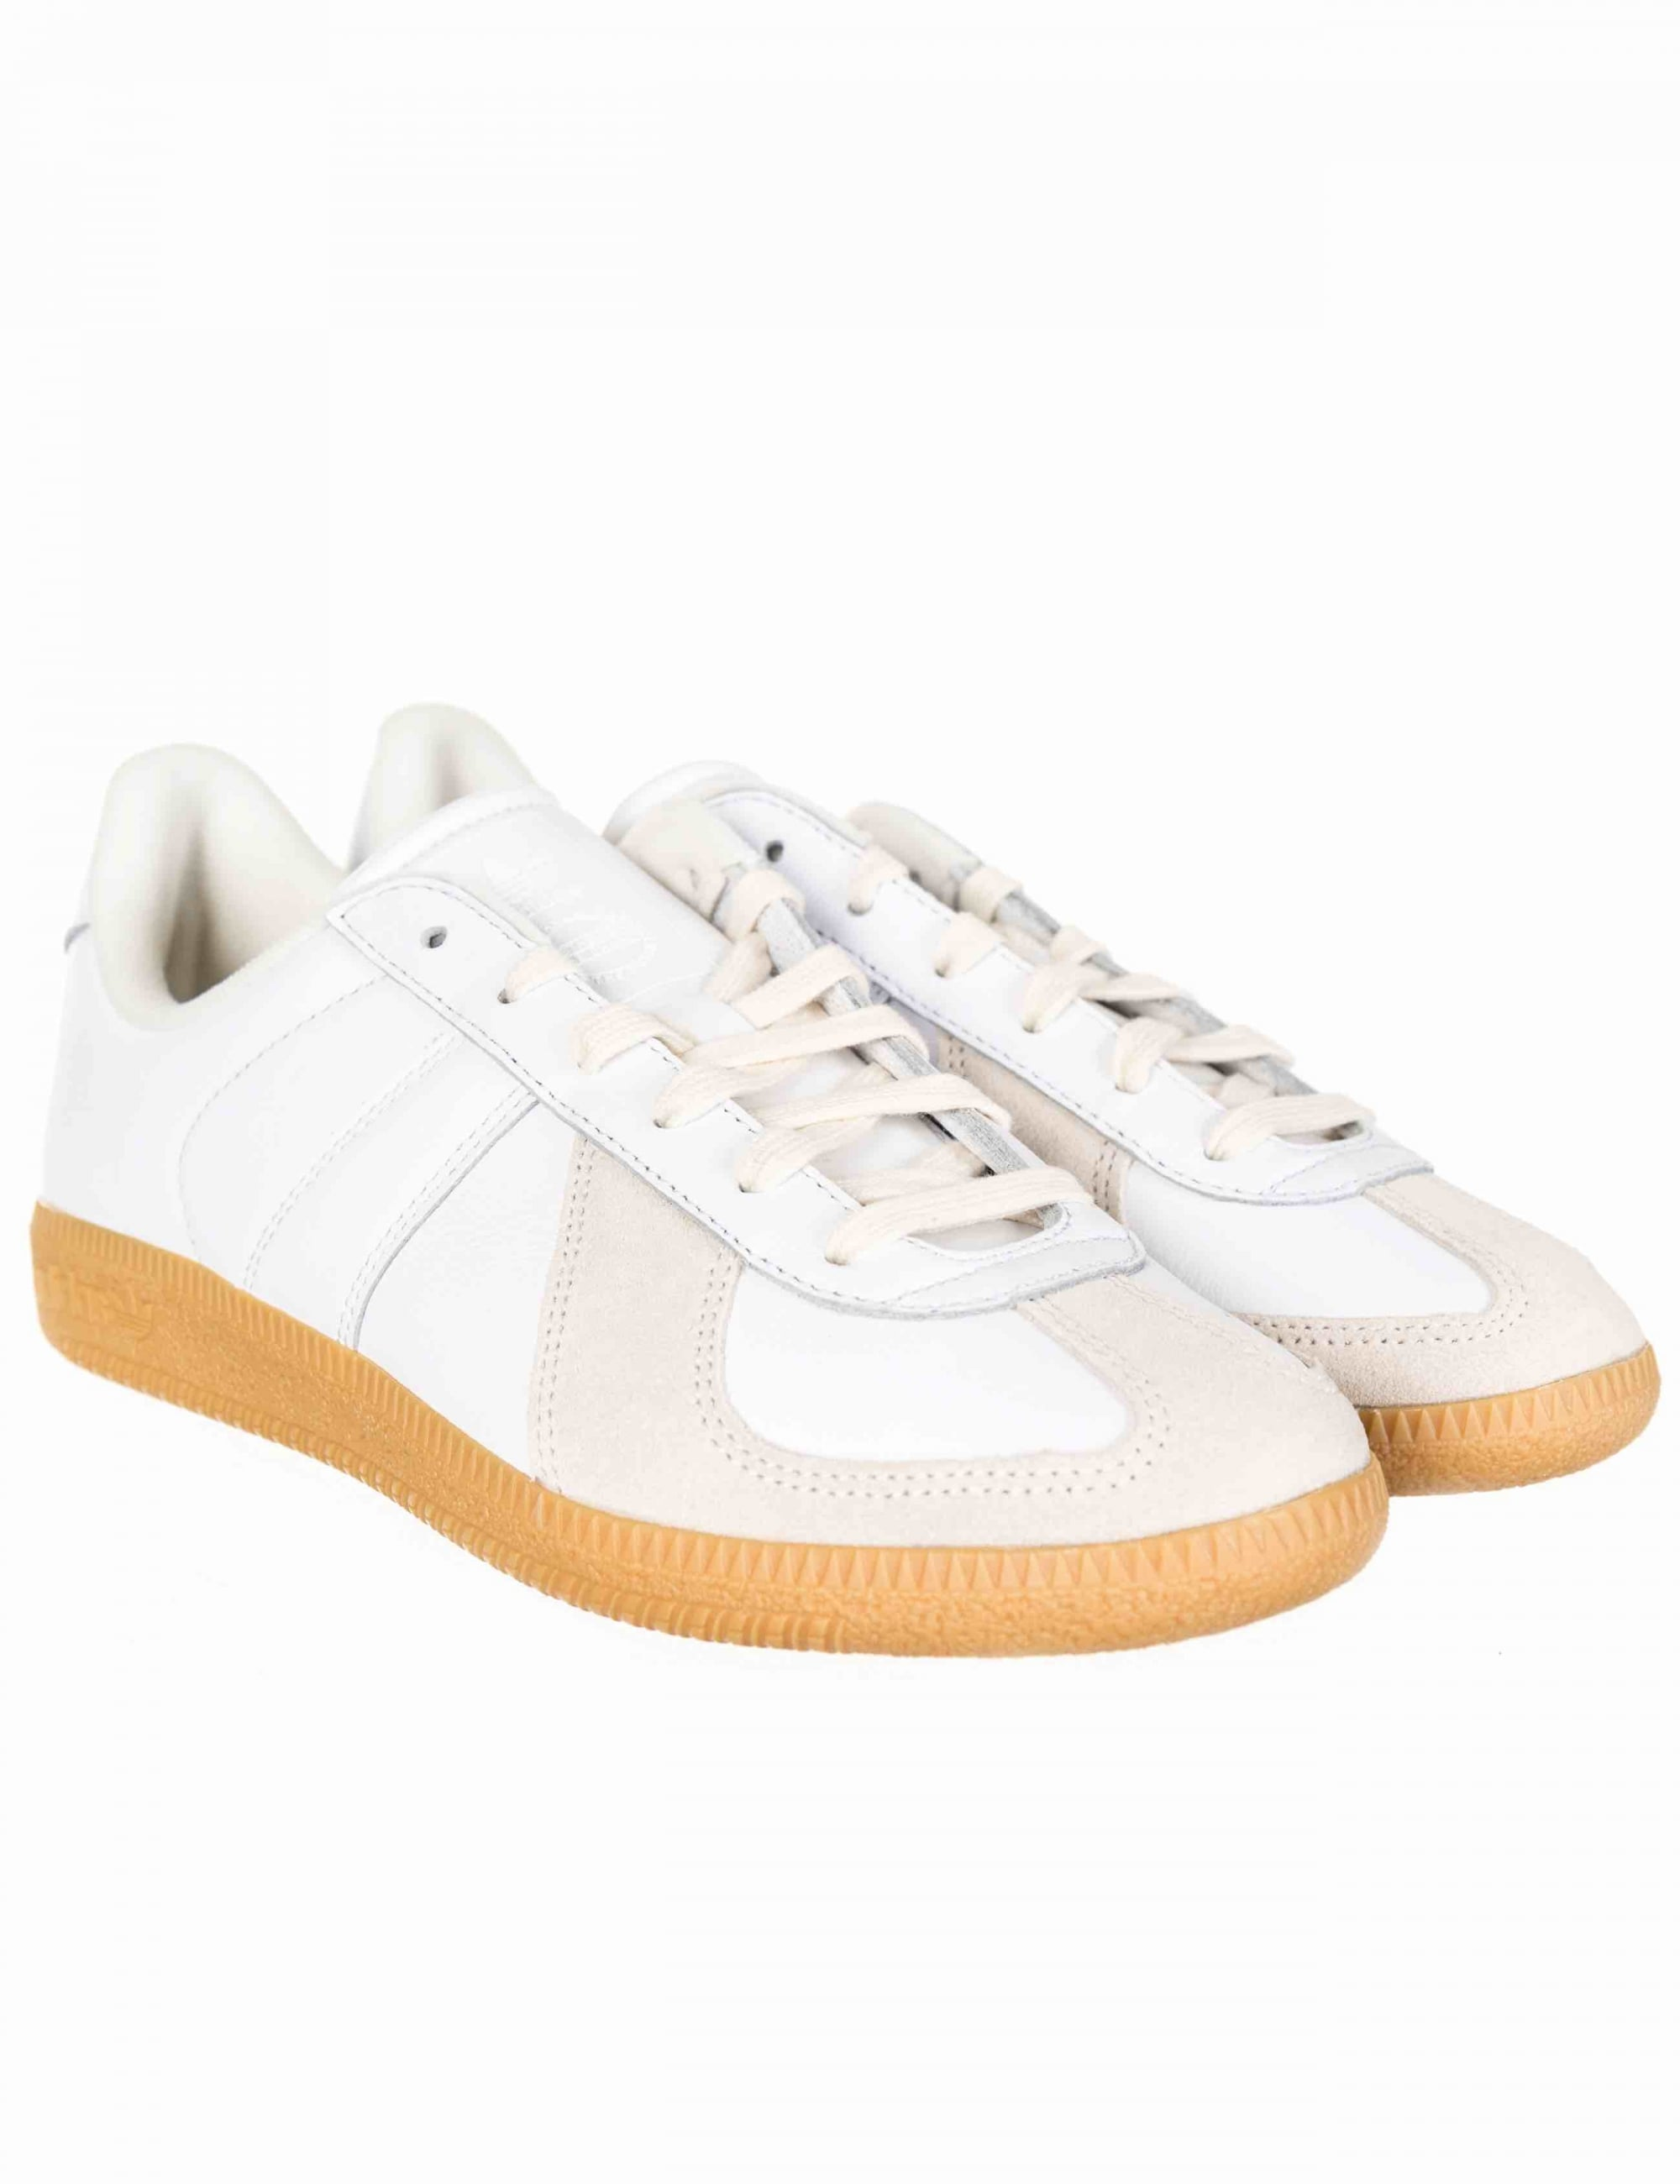 Adidas Originals BW Army Trainers - Ft